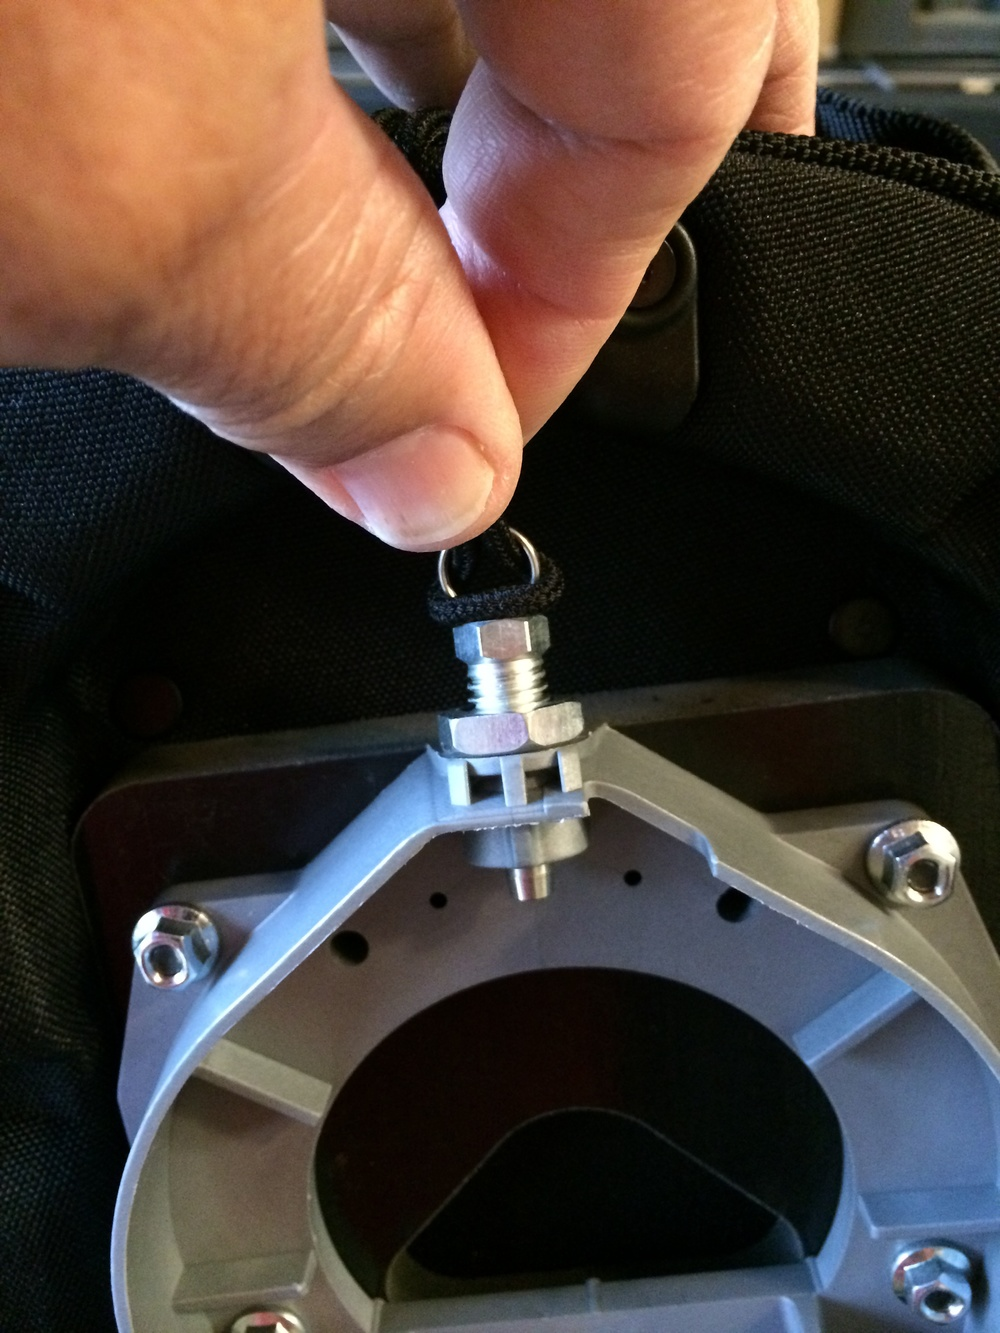 Here's the mating plate that goes on the bag. The pin secures the bag in place and it does not need to be pulled in order to insert the tank bag base onto the tank base. It does need to be pulled to remove the tank bag from the base.